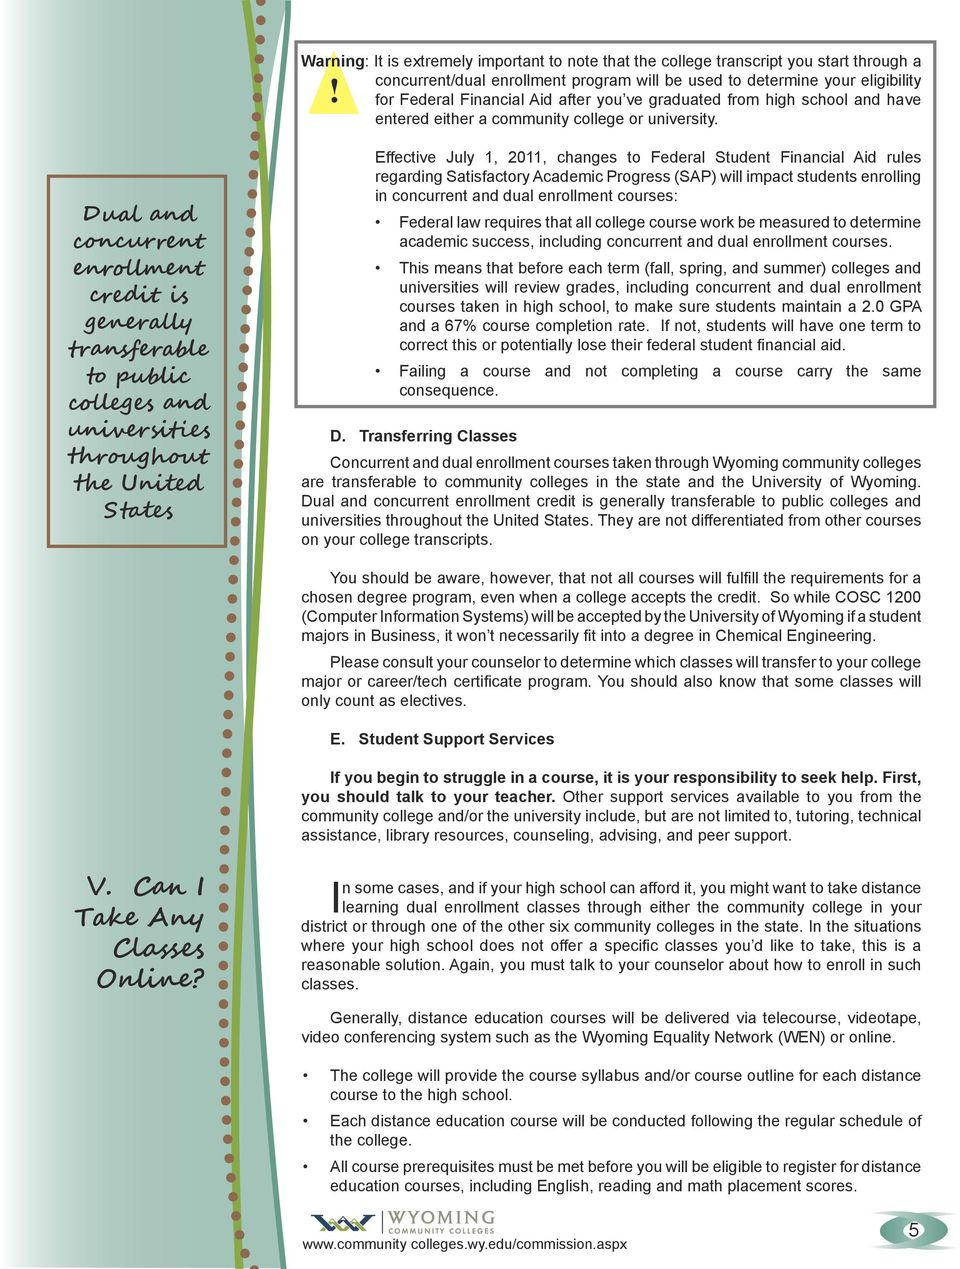 Dual and concurrent enrollment credit is generally transferable to public colleges and universities throughout the United States Effective July 1, 2011, changes to Federal Student Financial Aid rules